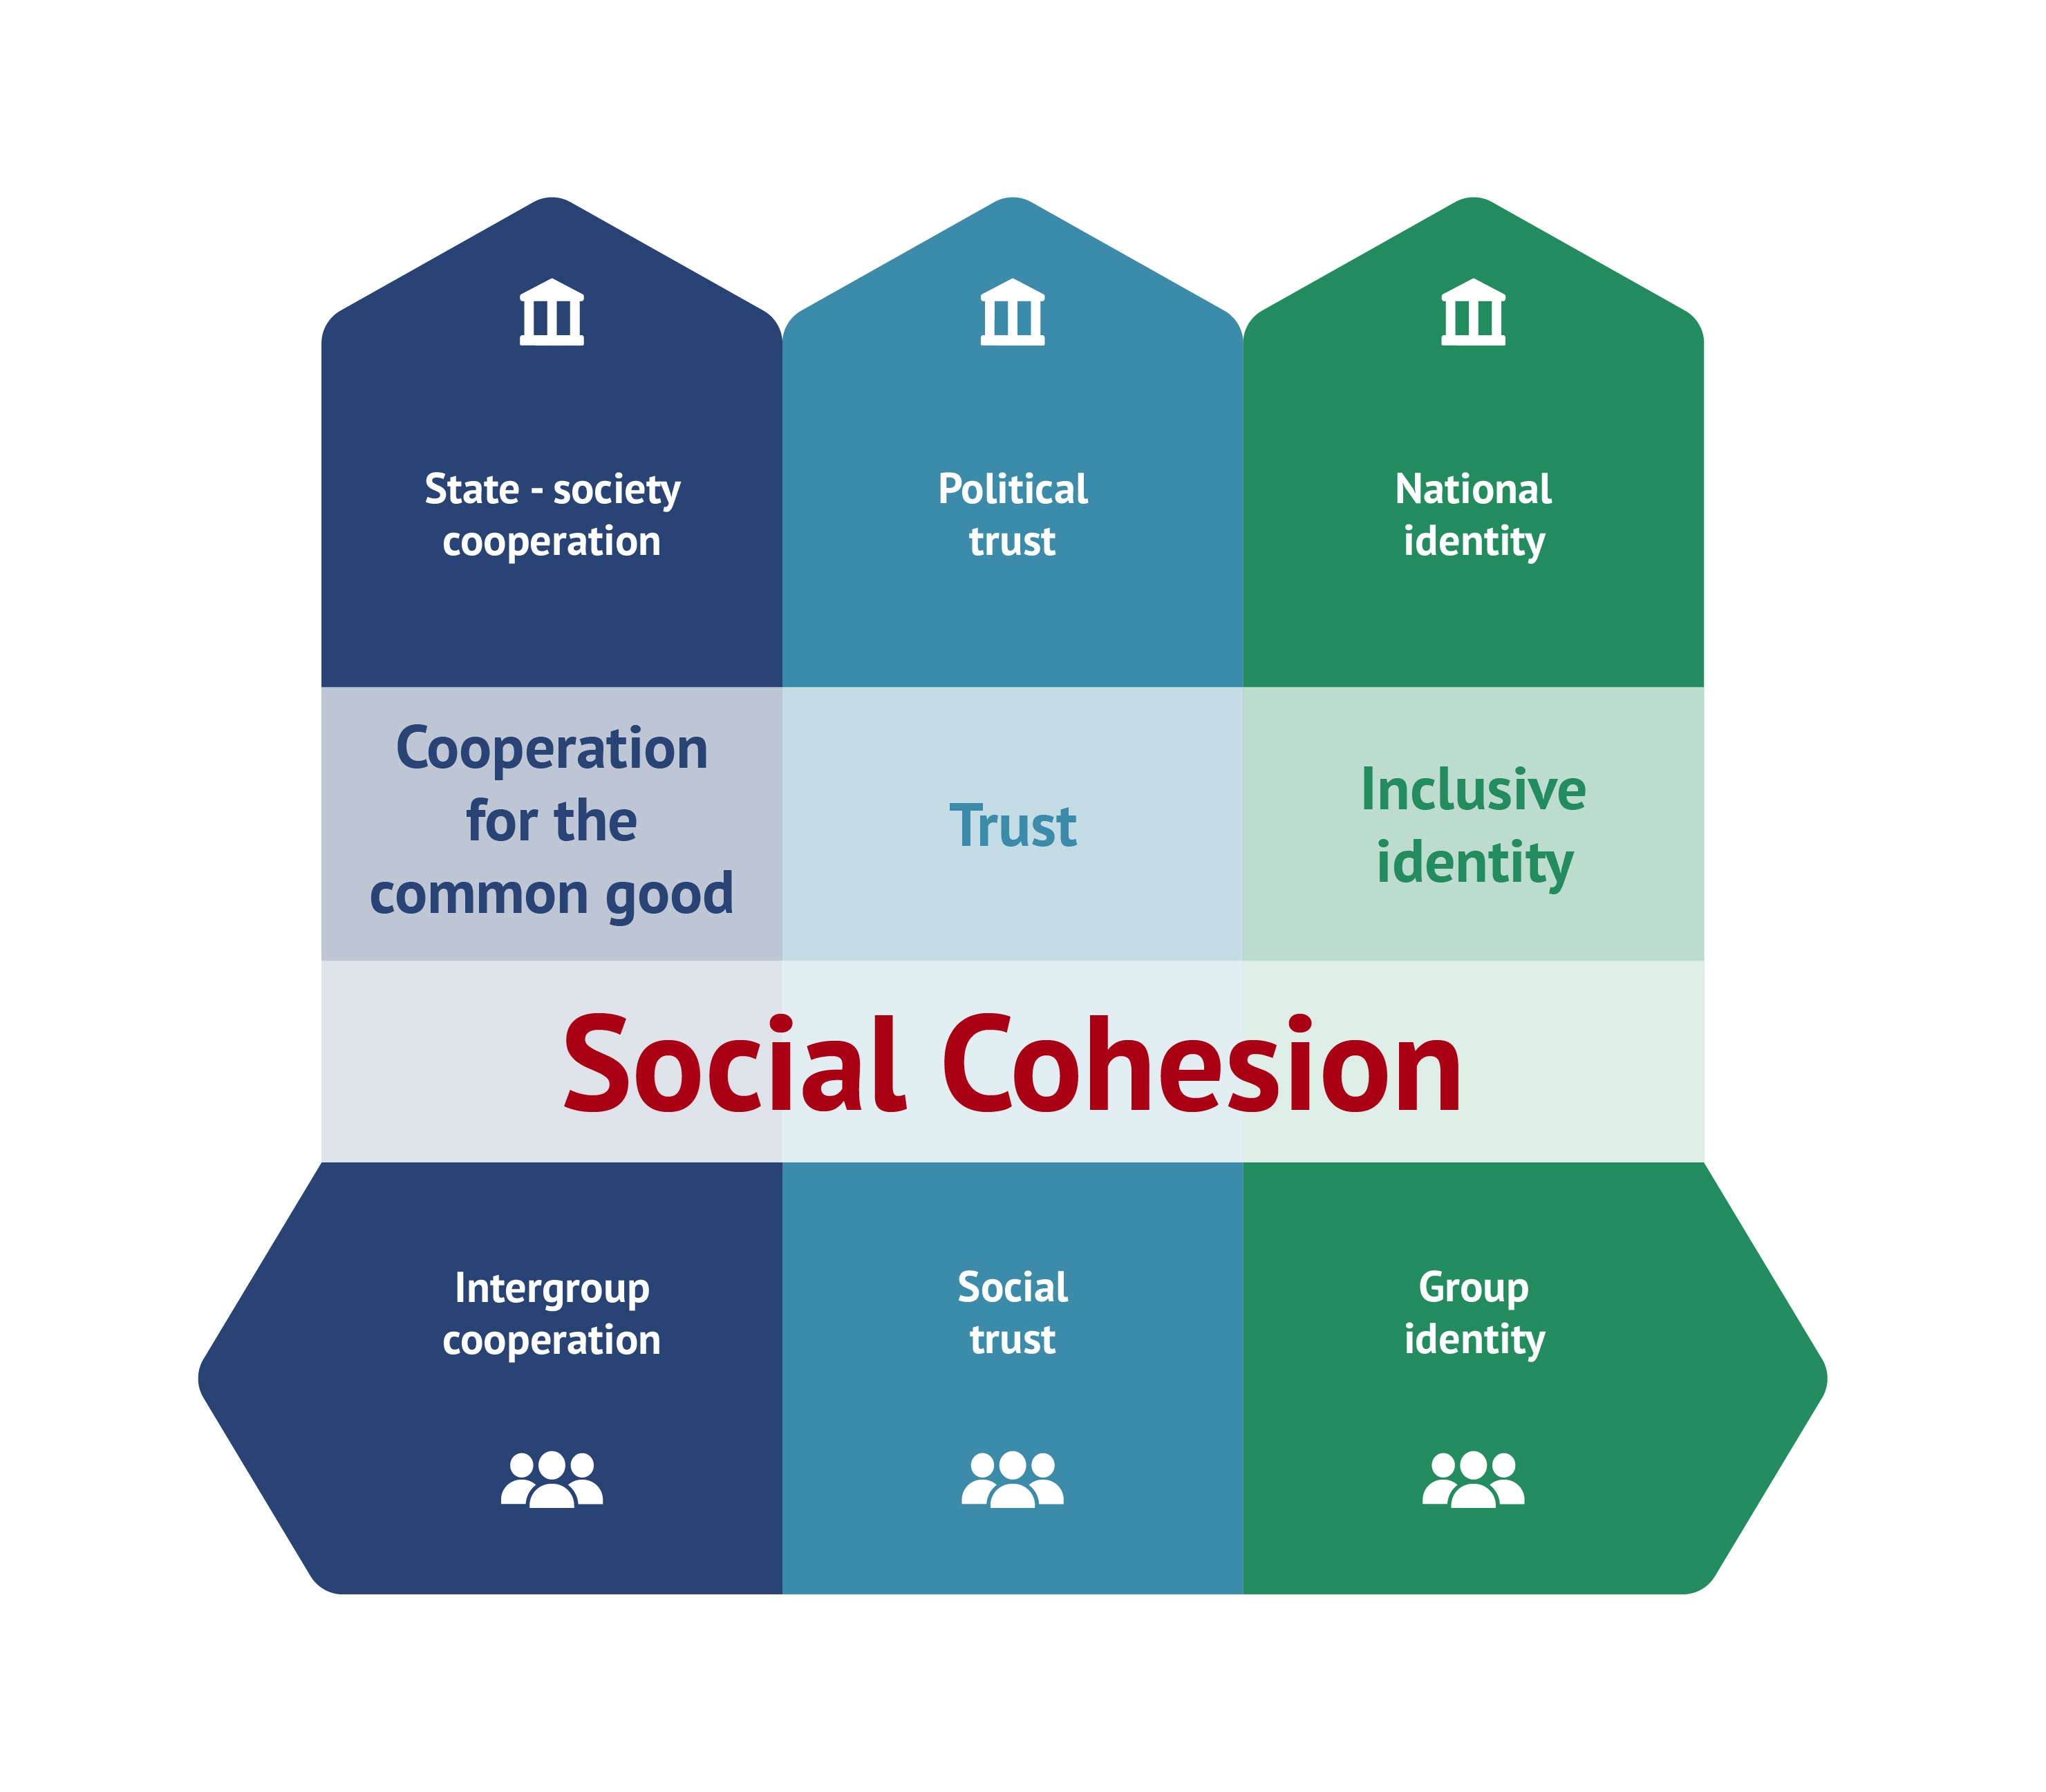 DIE's Concept of Social Cohesion